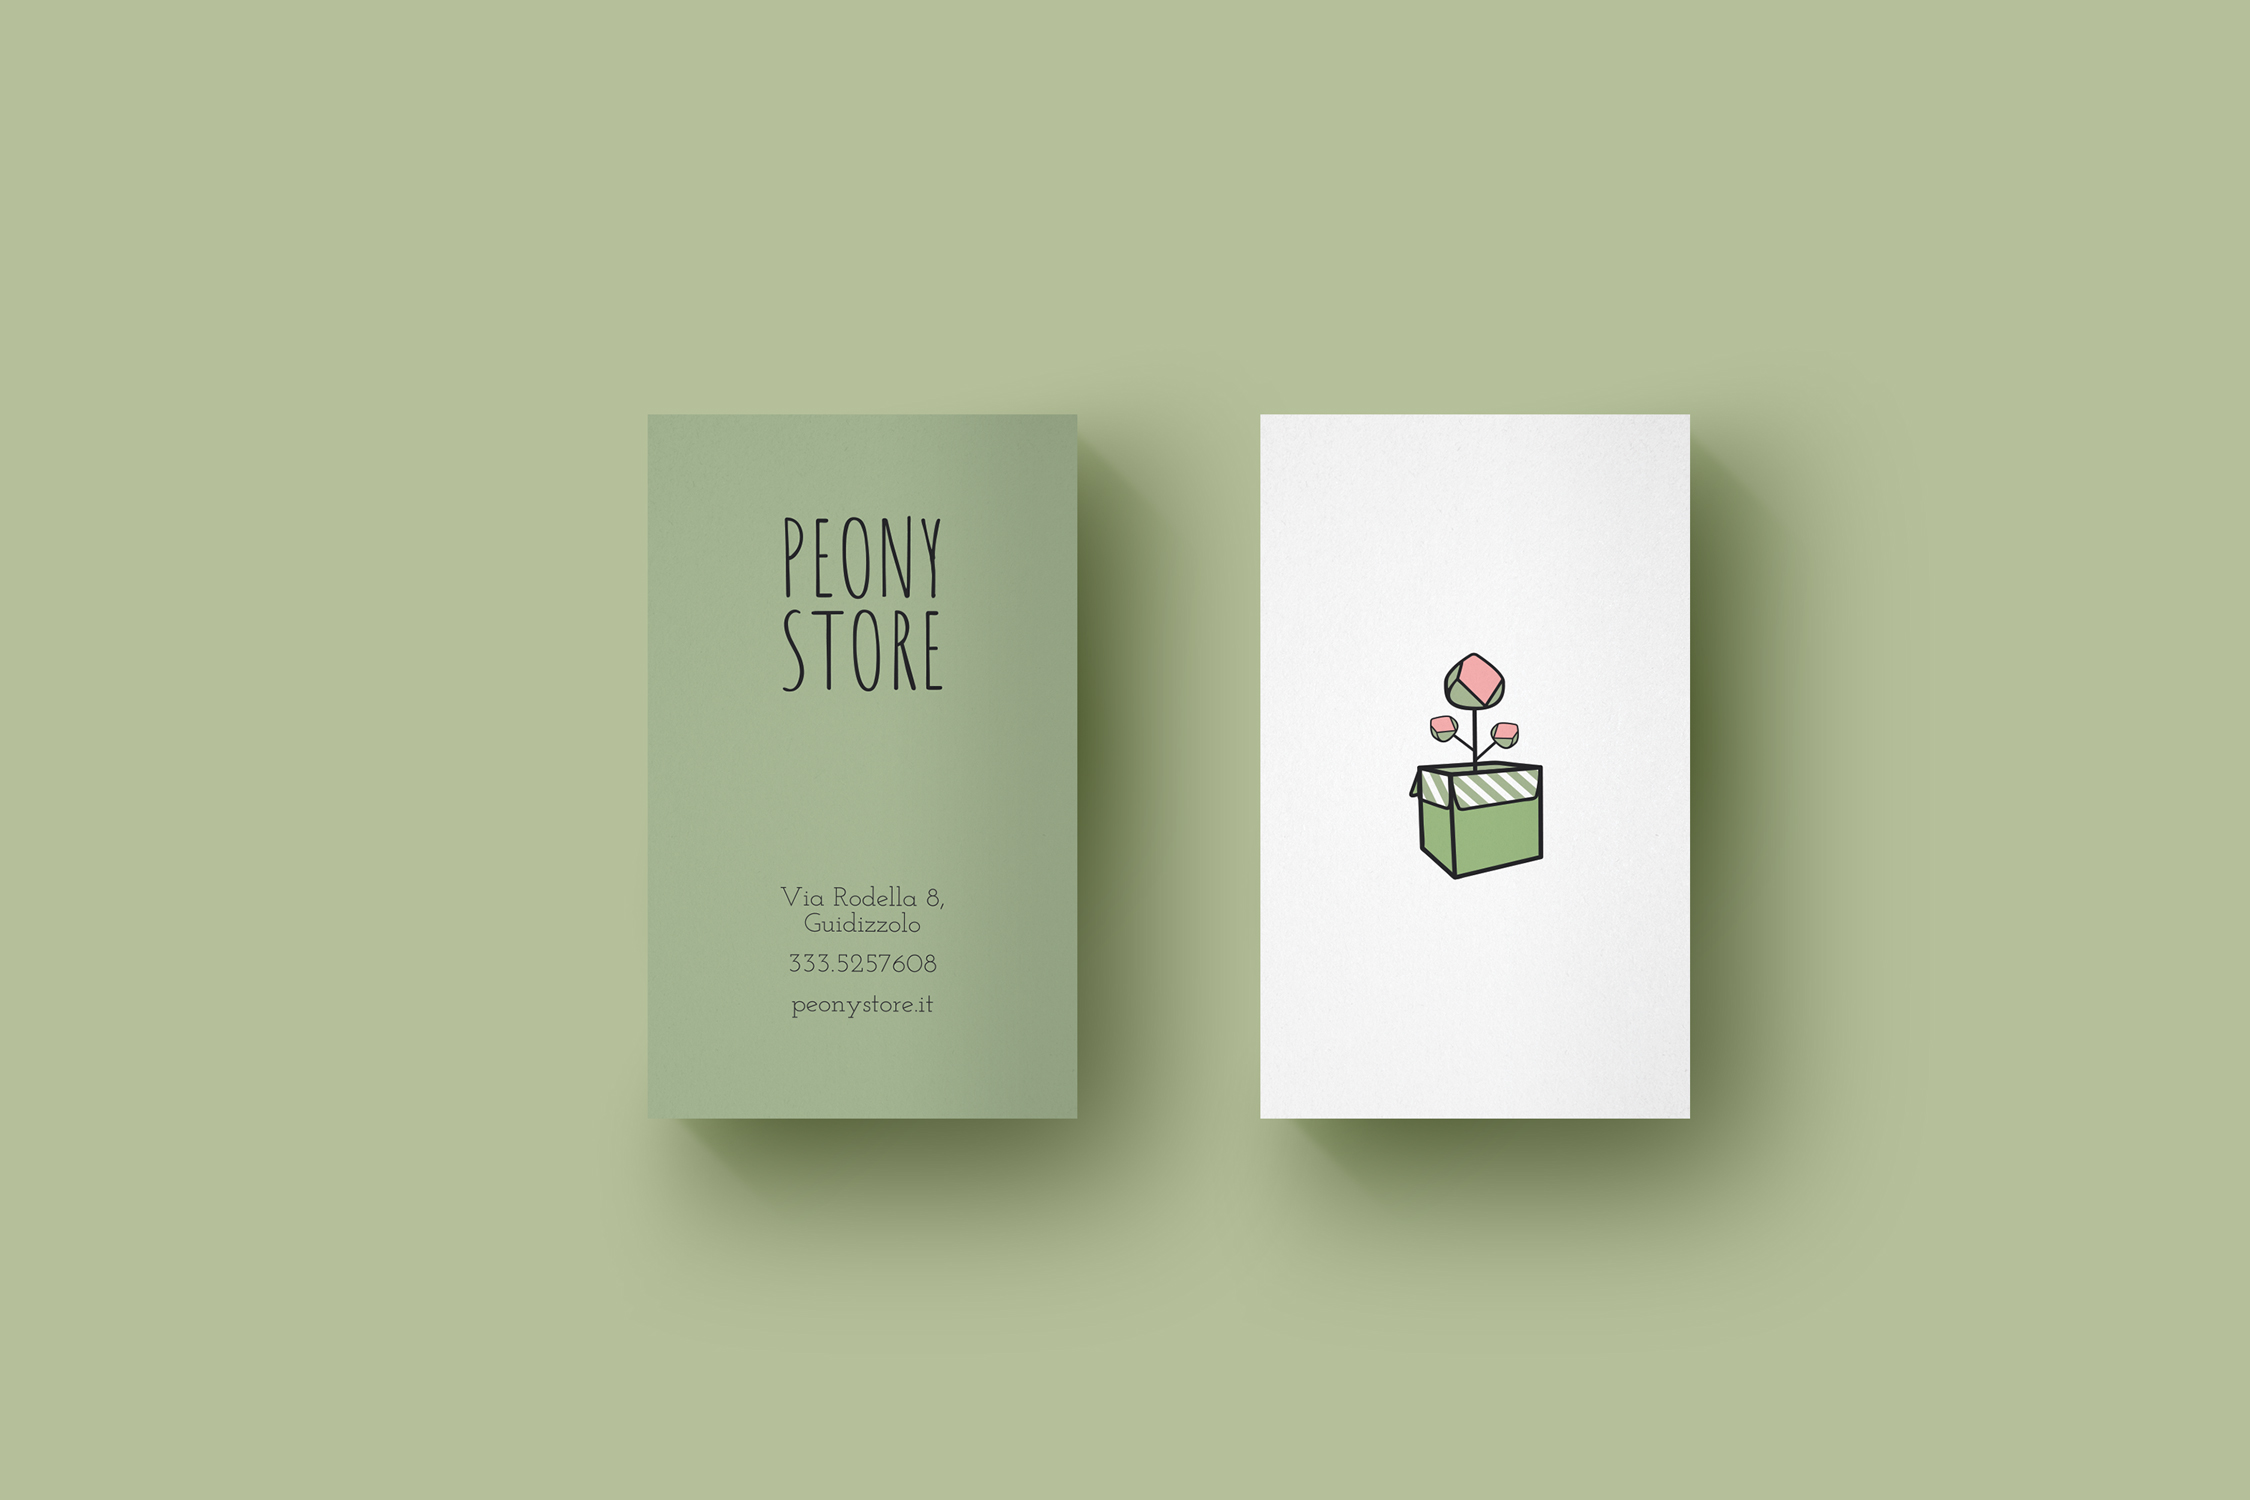 PEONY-STORE-LOGO-GRAFICA-SOCIAL-E-SITO-INTERNET-business-cards